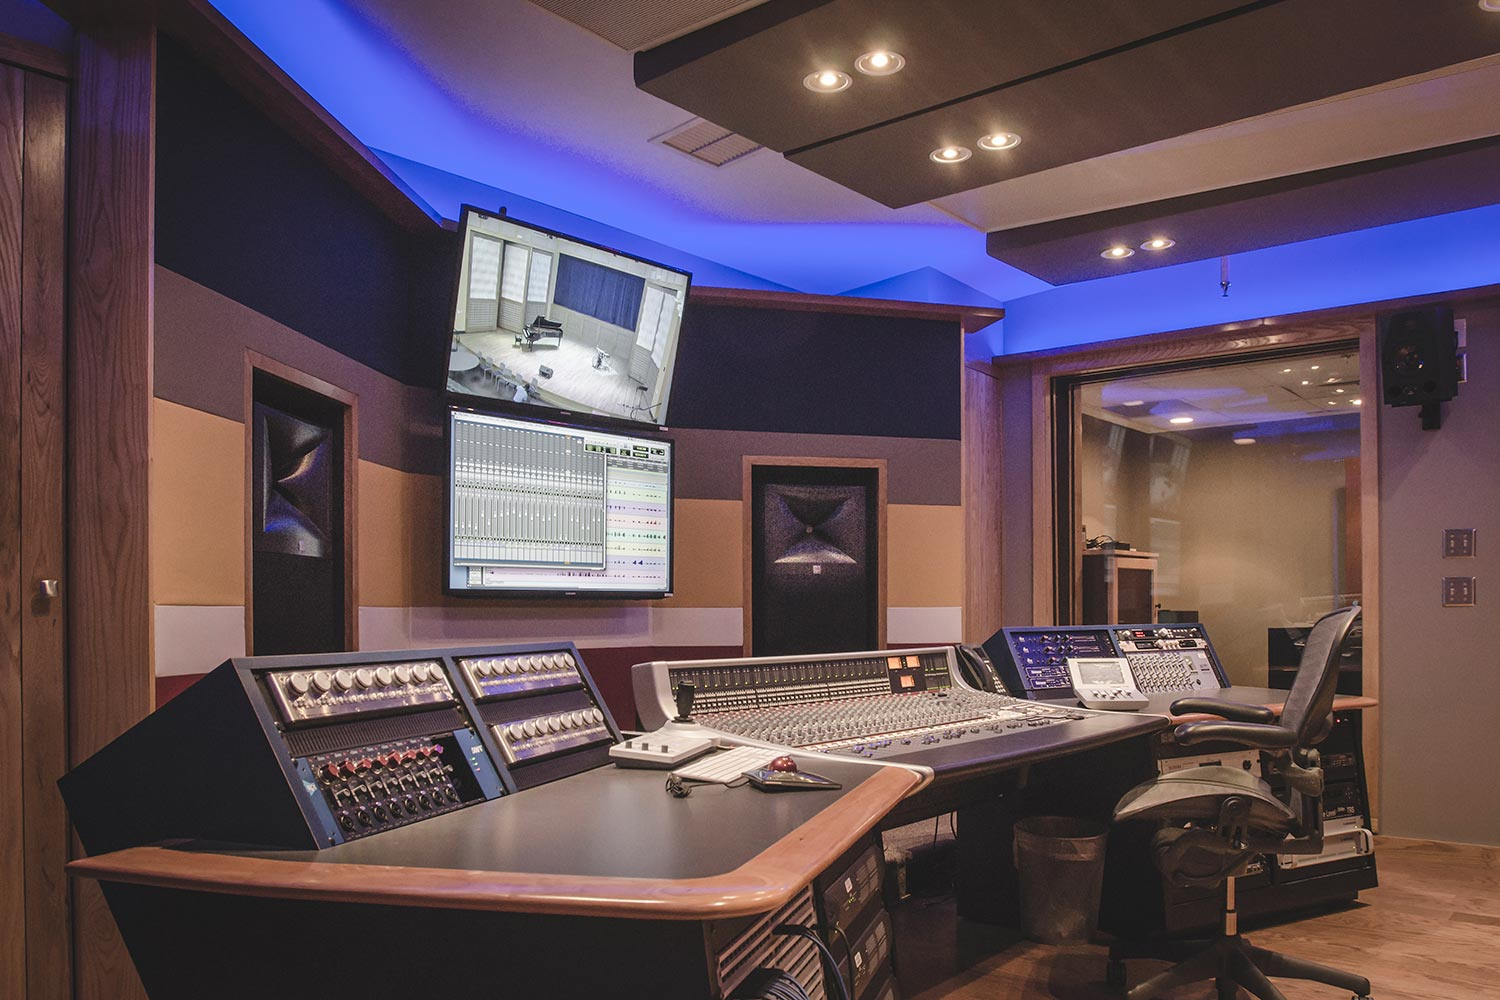 Ellis marsalis center for music opens wsdg studio with jbl for Recording studio design